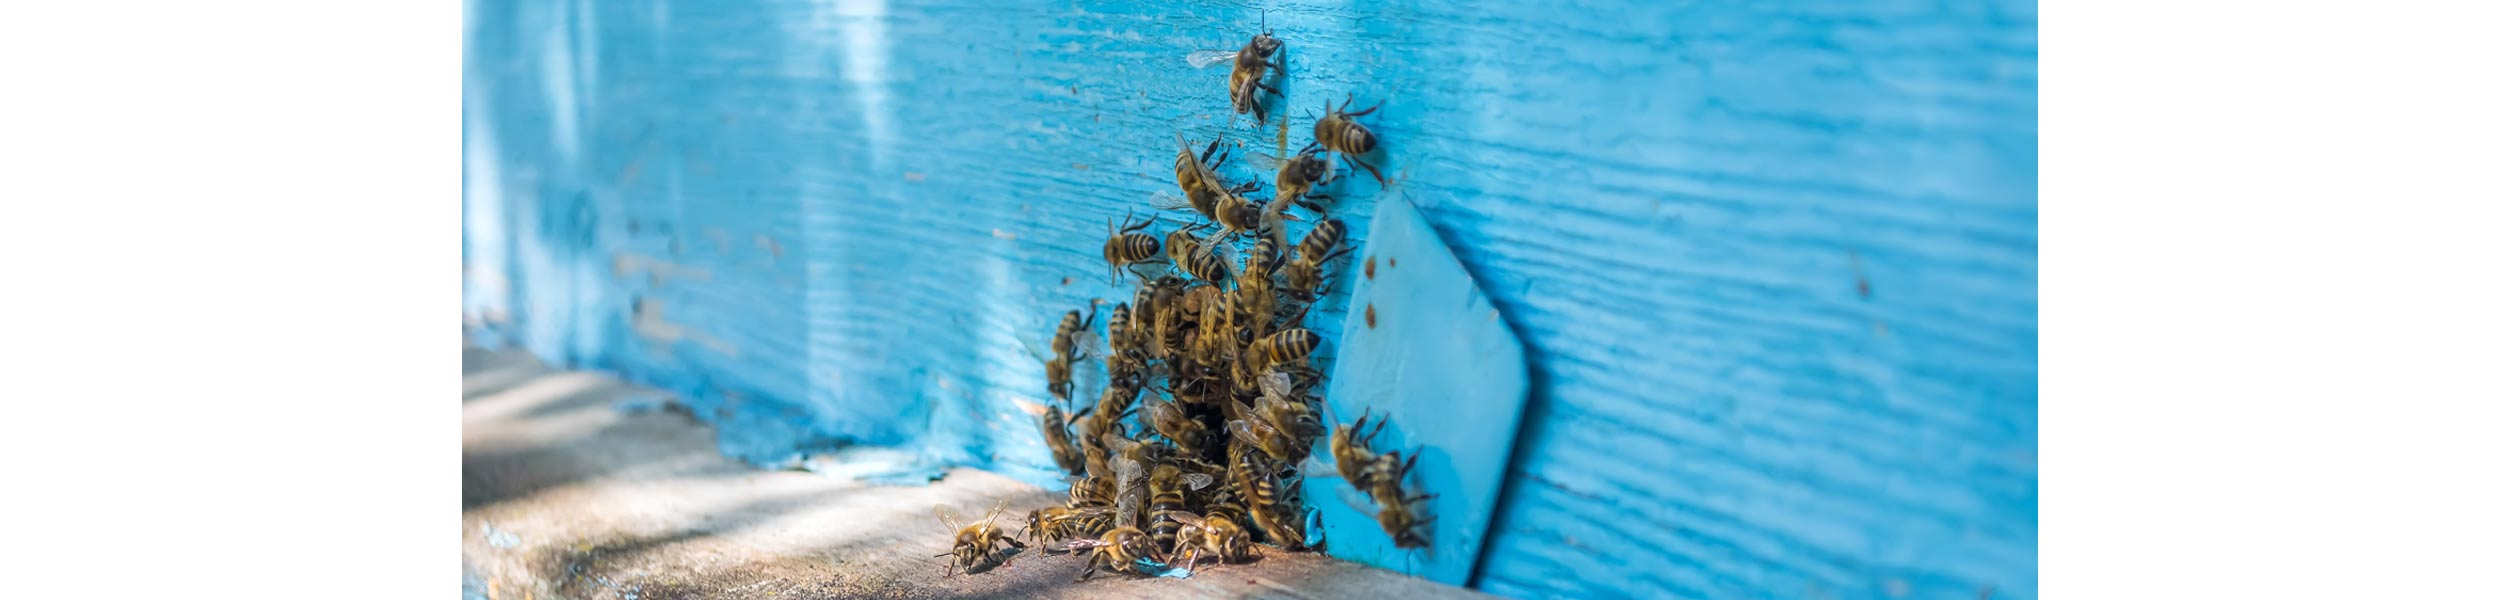 ACE Exterminating-Pest-Services-Bees-Swarm-Hole-Header